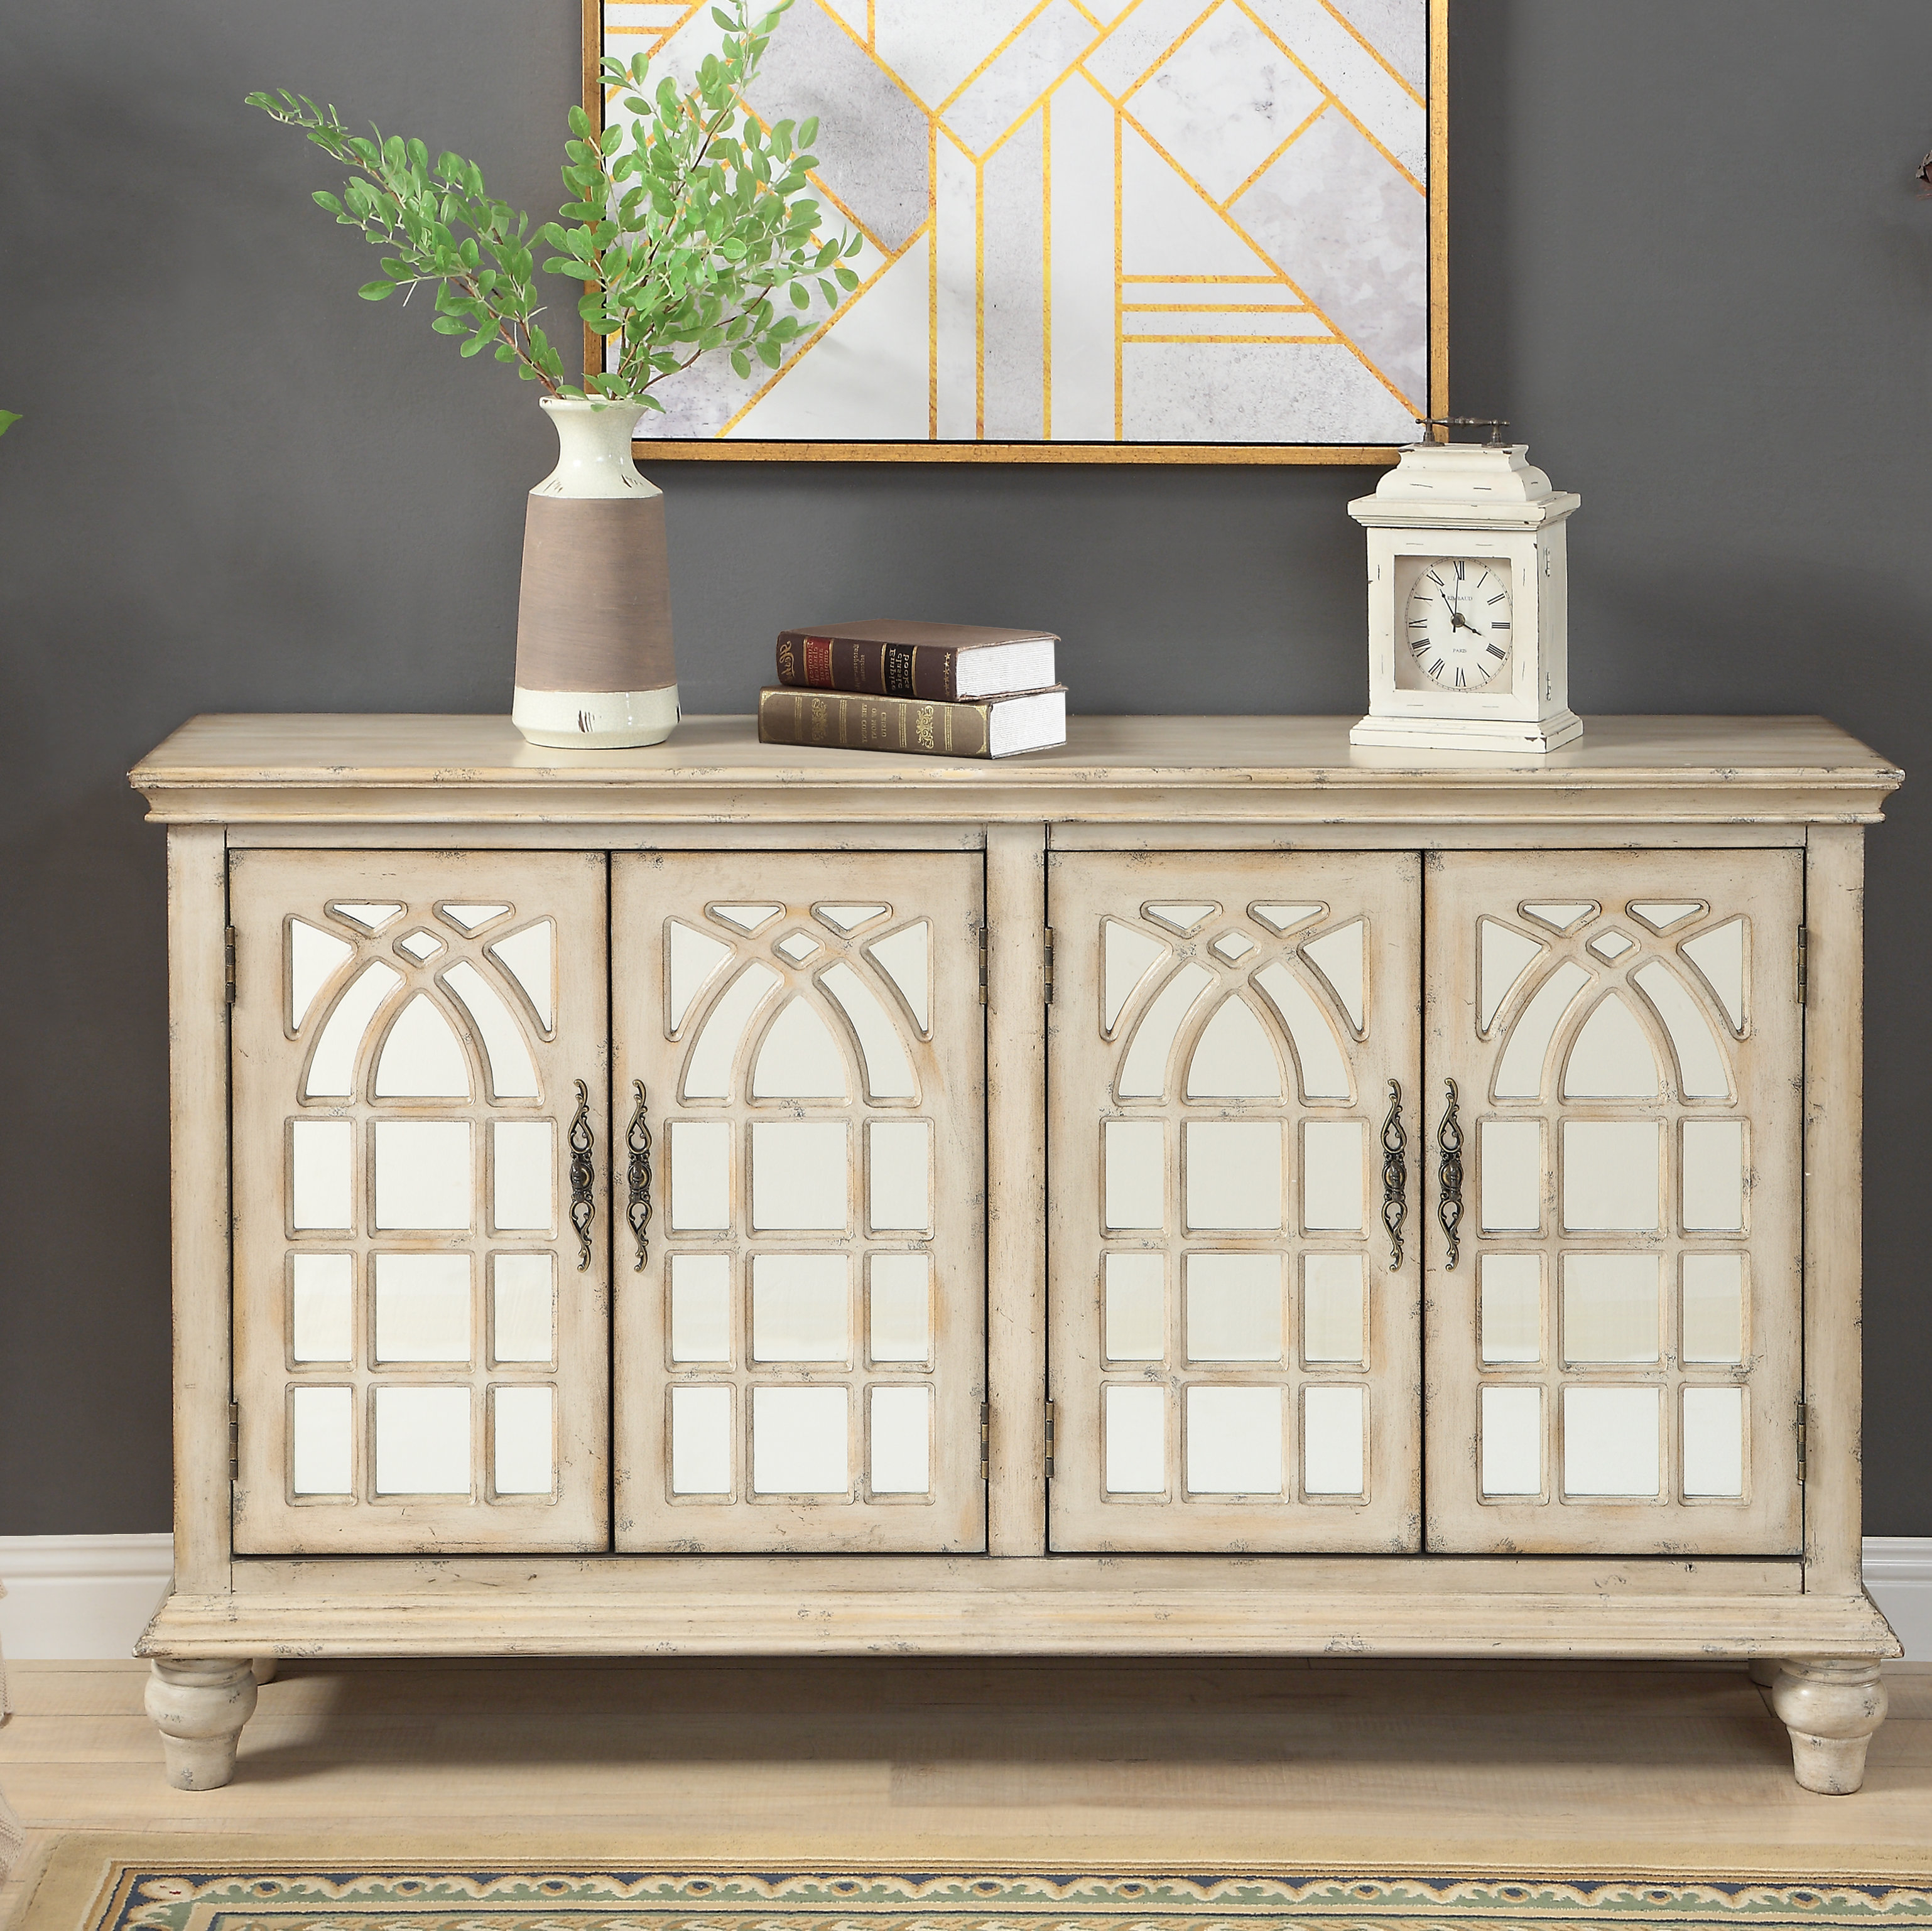 Living Room Credenza | Wayfair Intended For Recent Adelbert Credenzas (#14 of 20)